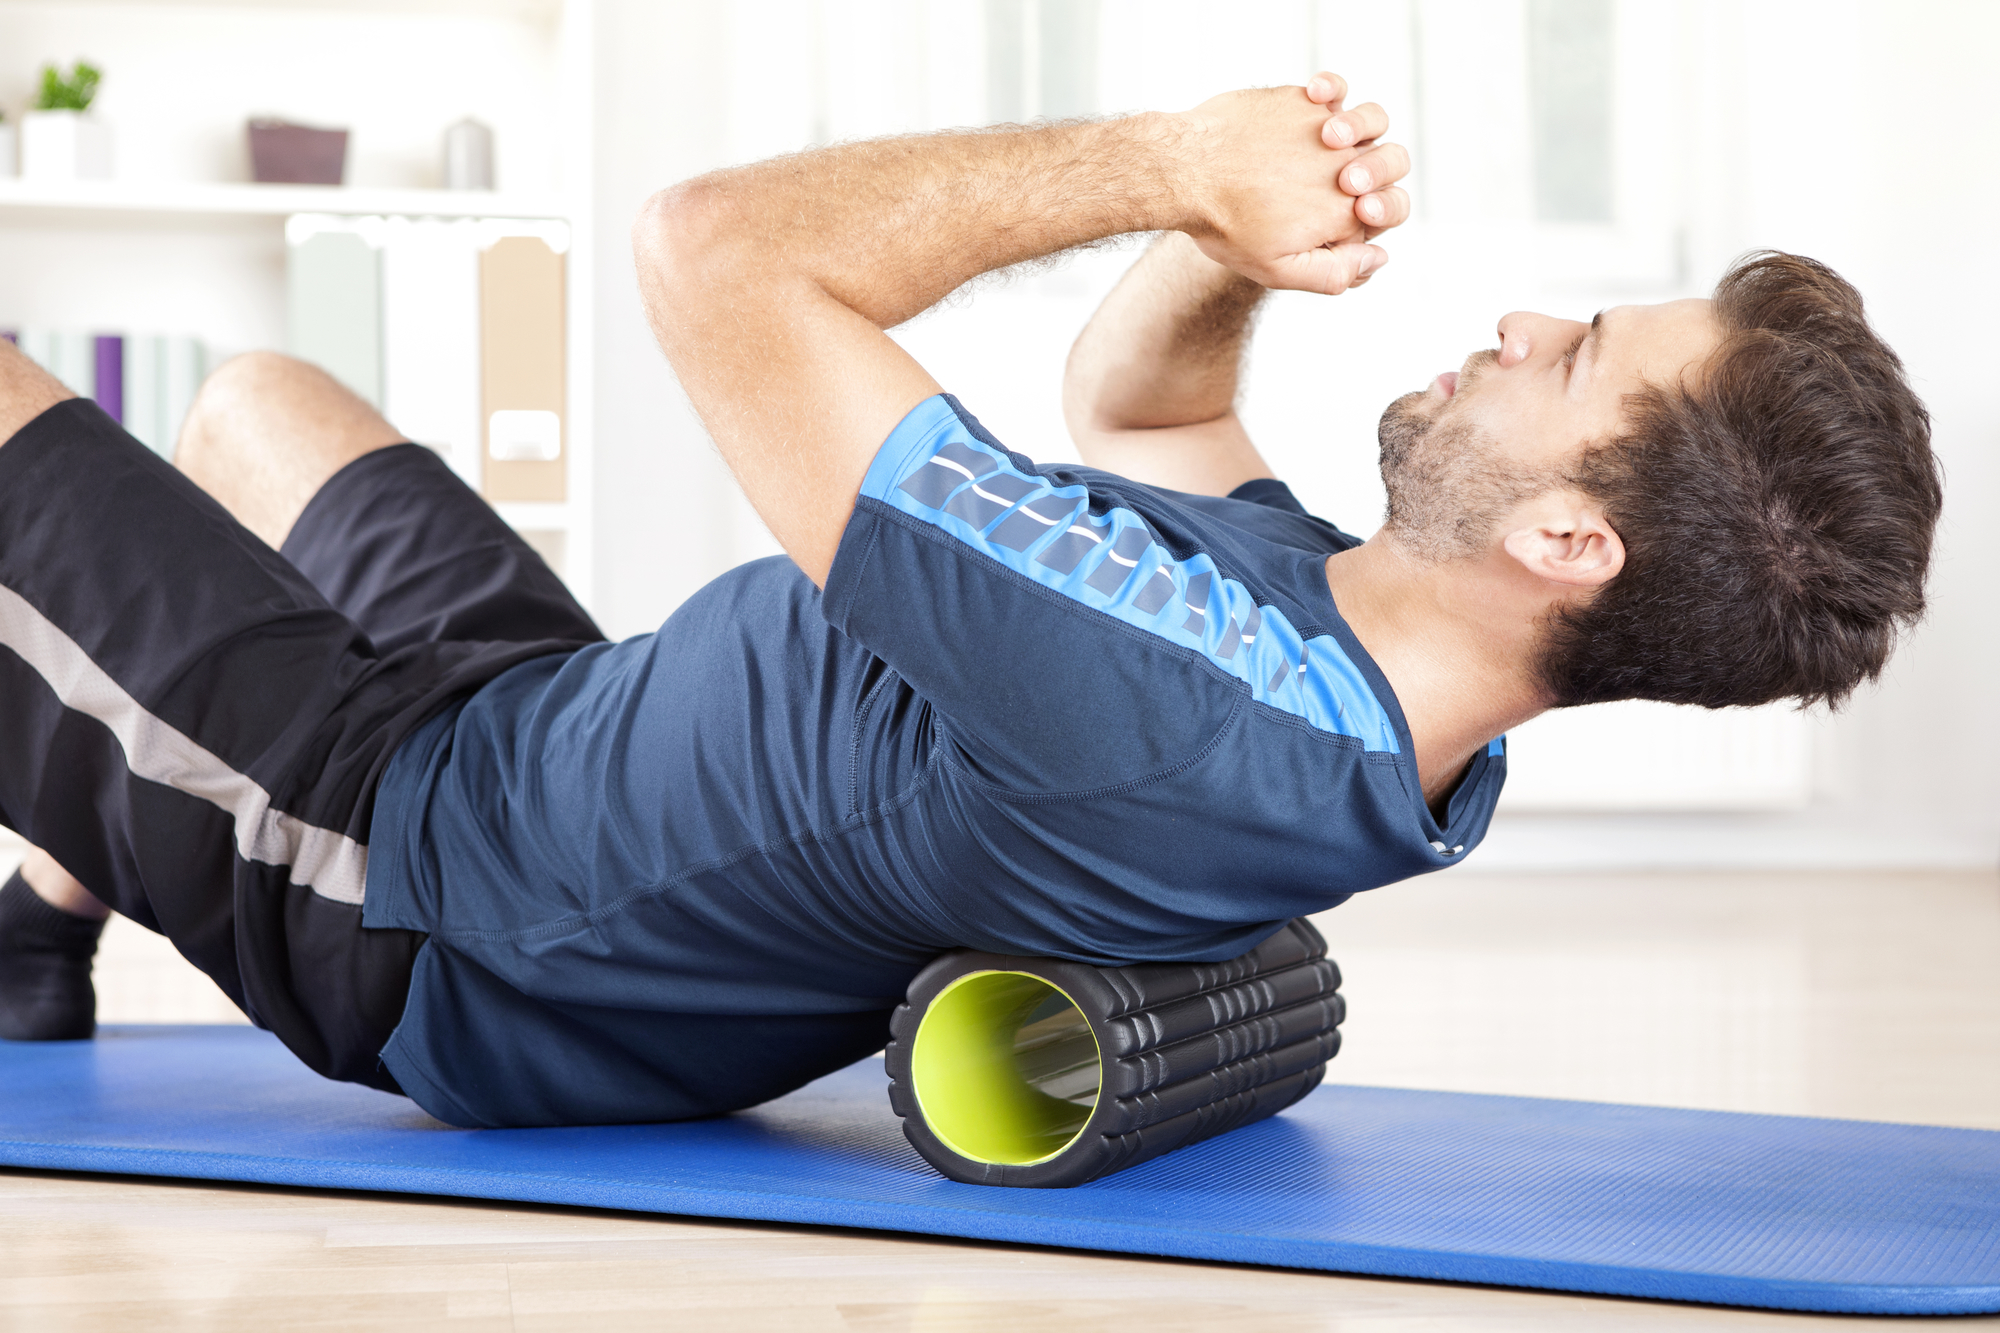 Man Lying on a Foam Roller While Doing an Exercise